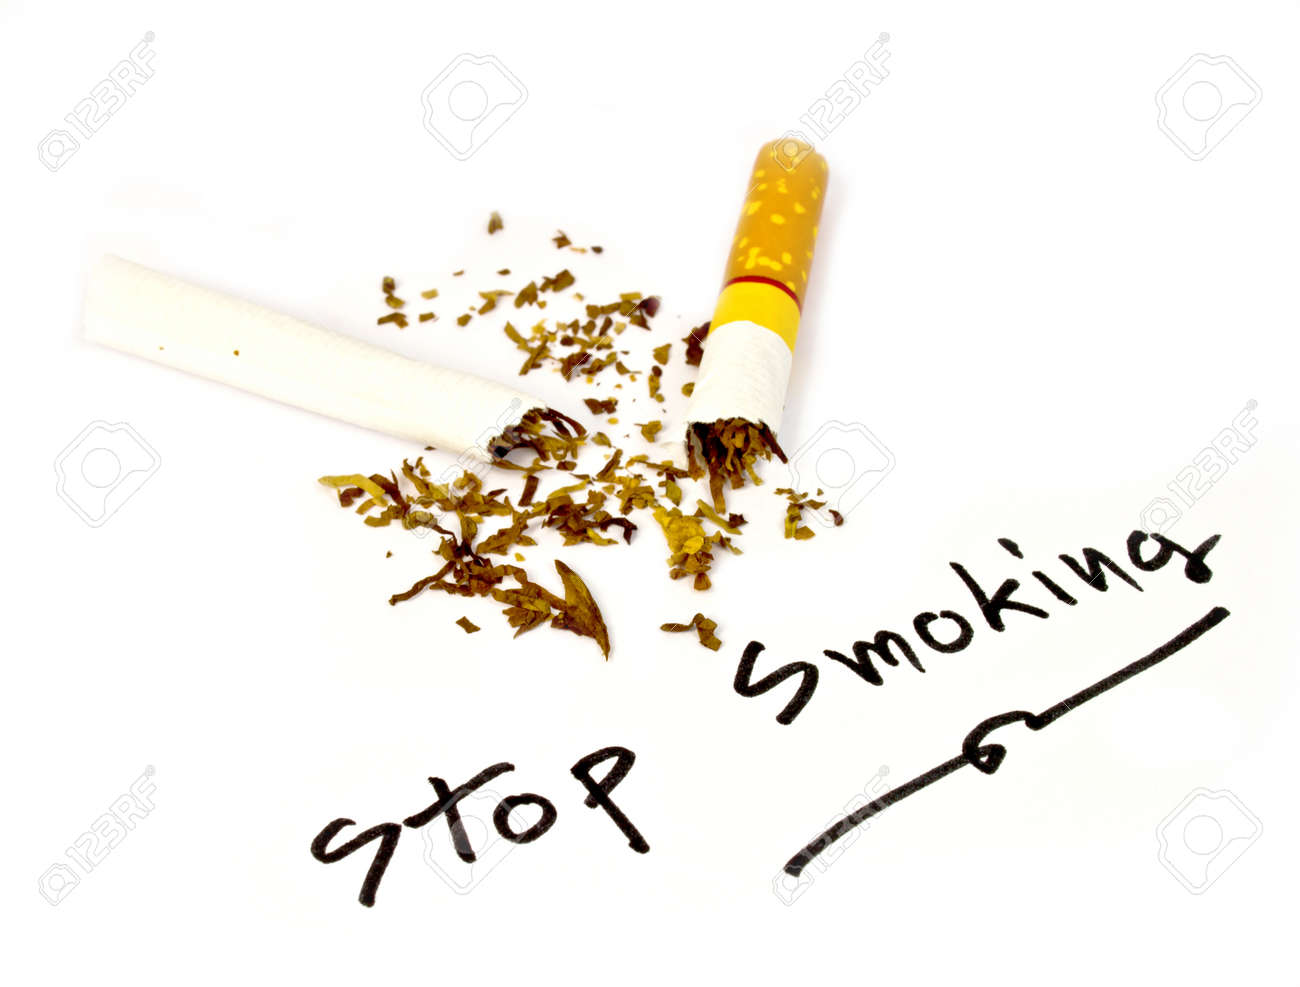 Written stop smoking, please stop smocking, now